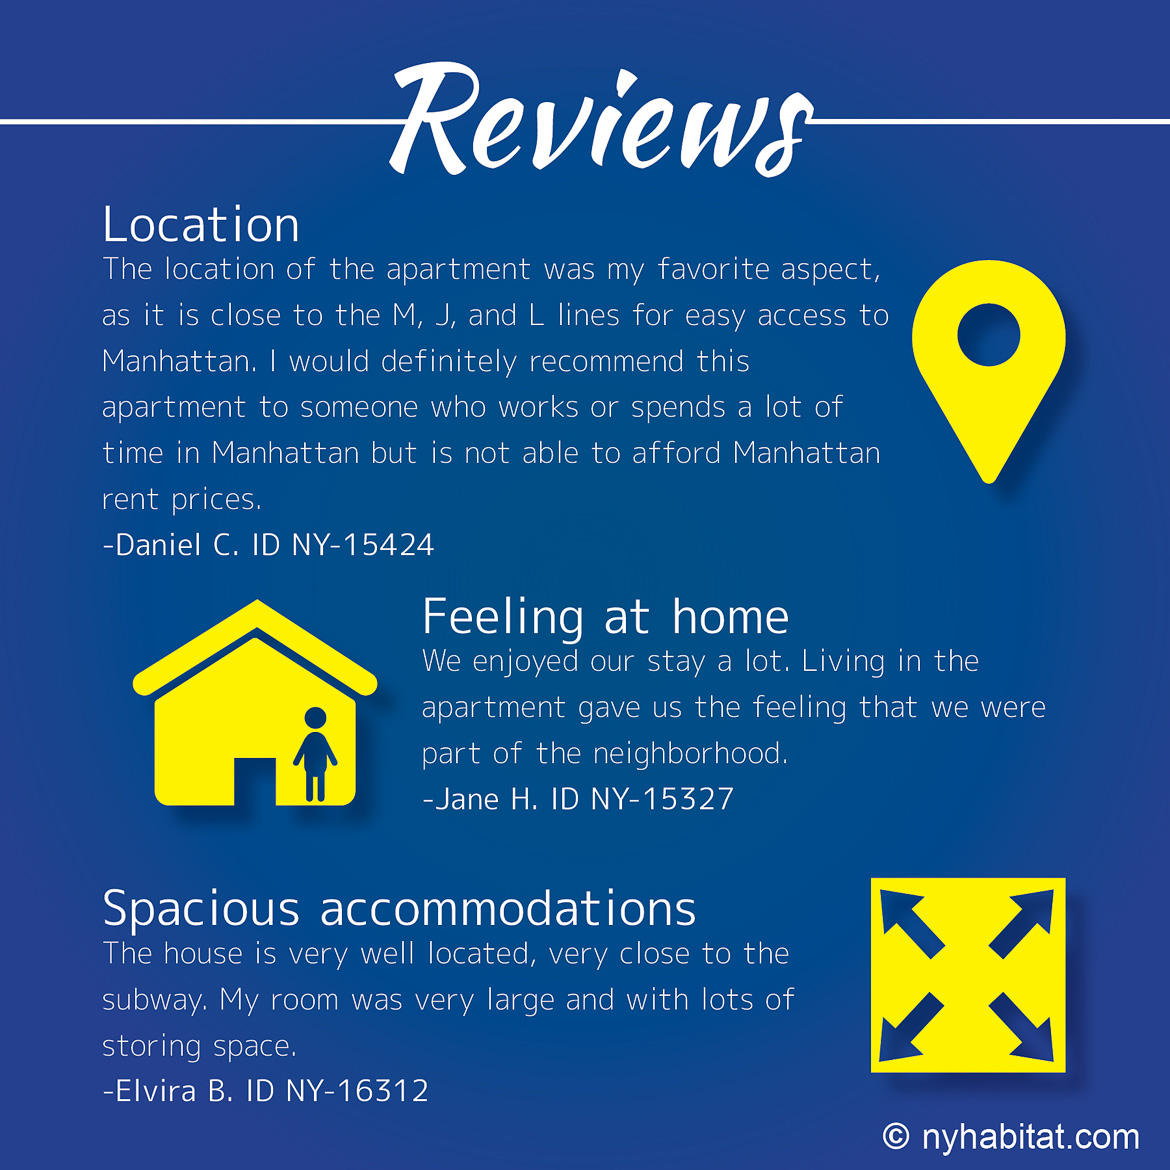 Infographic of client reviews about apartments in Bushwick, Brooklyn